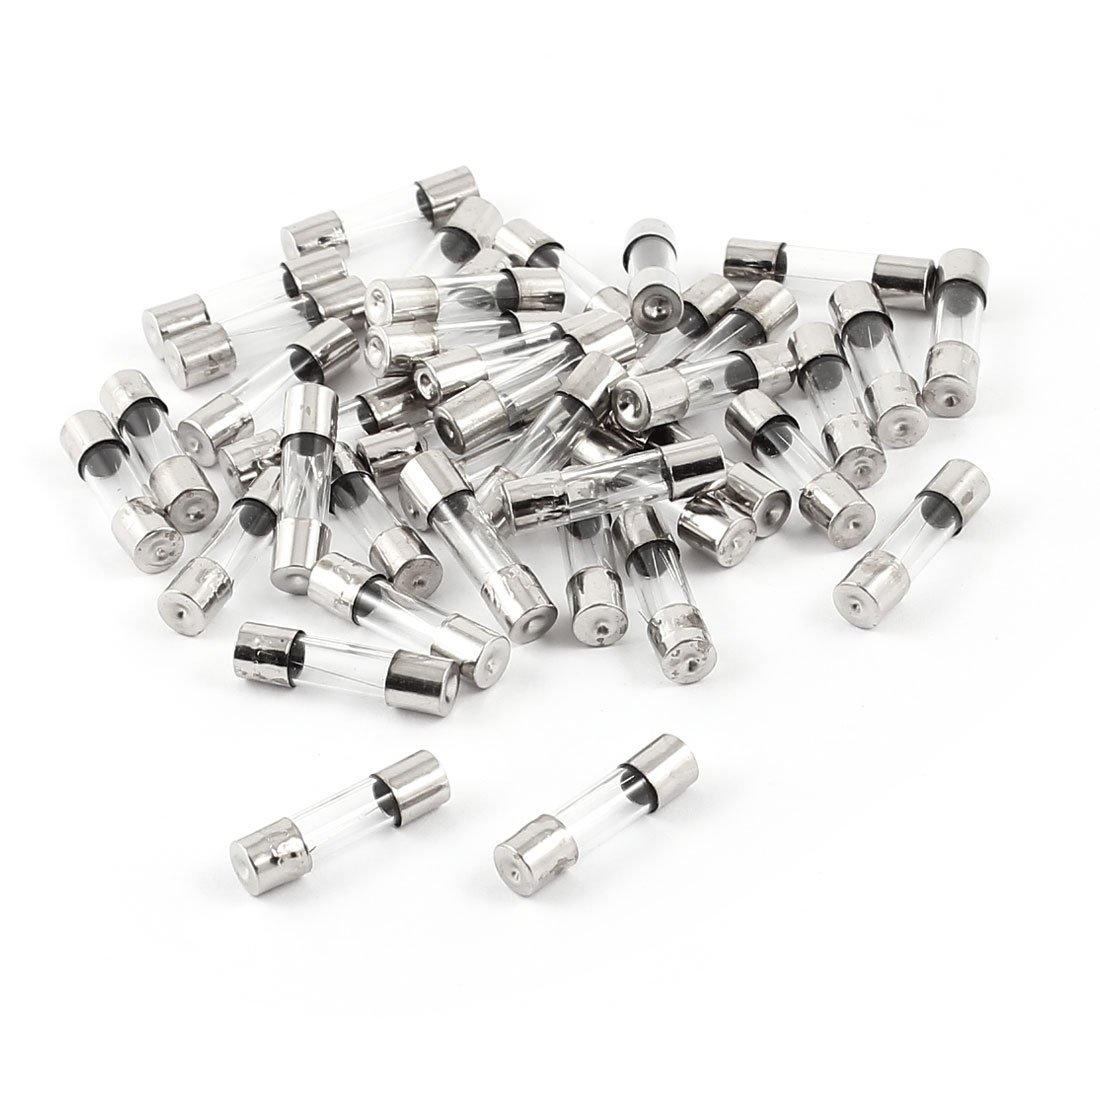 40 Pcs 250V 1Amp 5mmx50mm Fast Blow Type Quick Glass Tube Fuses